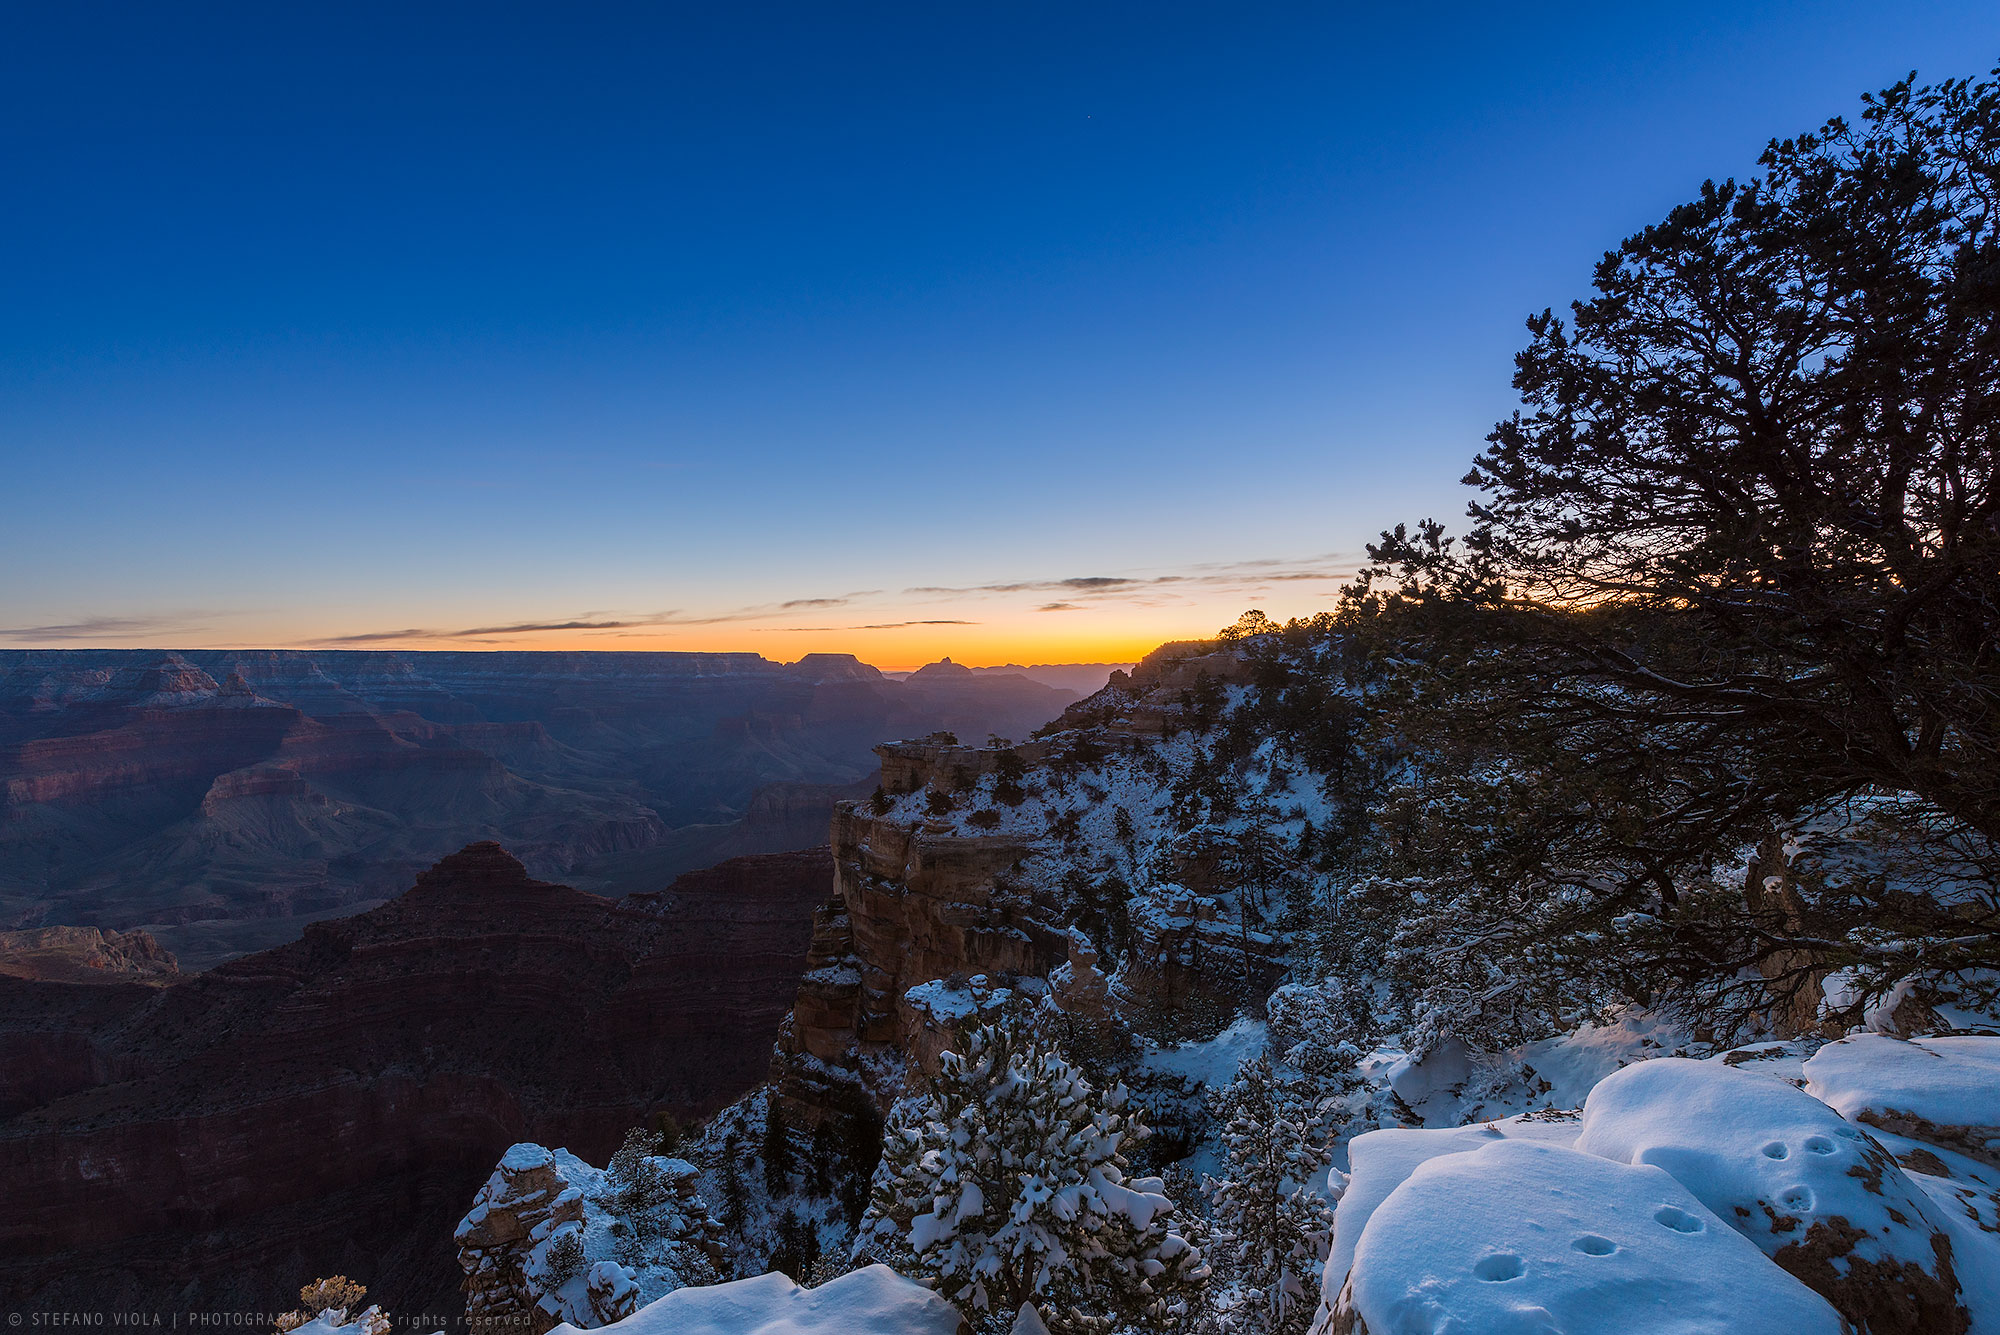 Sunrise at Grand Canyon